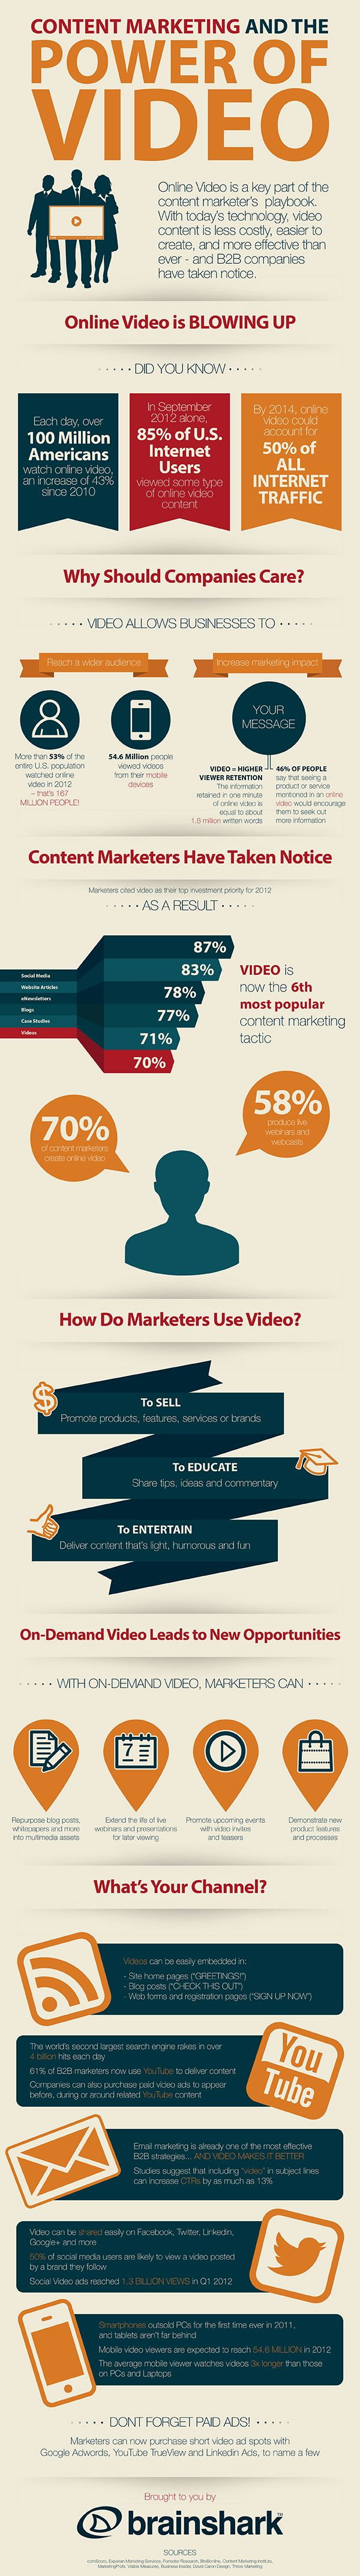 "Content marketing & the power of video > best advice for video ever received ""keep it under 3 mins"" ;~)"